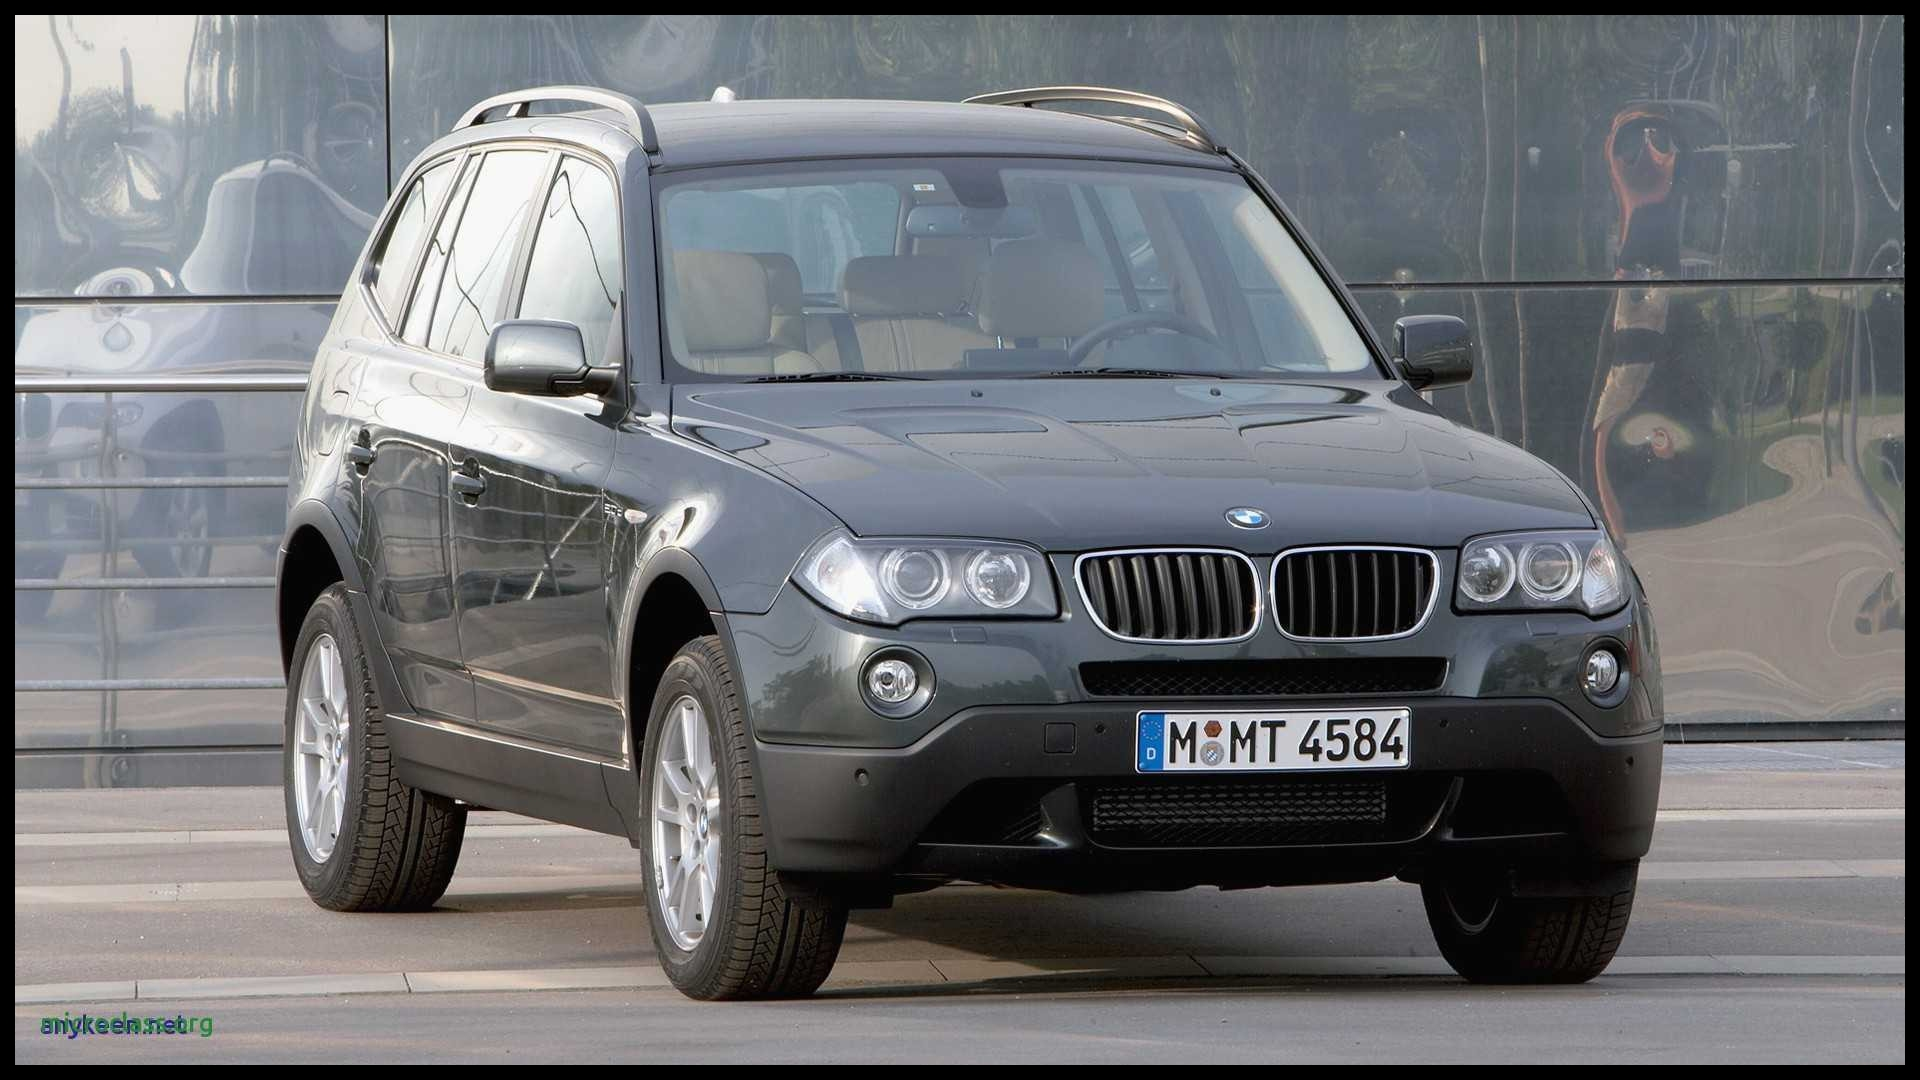 Cars Bmw Overwhelming Bmw X5 3 0d Se Extended Warranty For Bmw Picture Bmw X Series Wallpapers